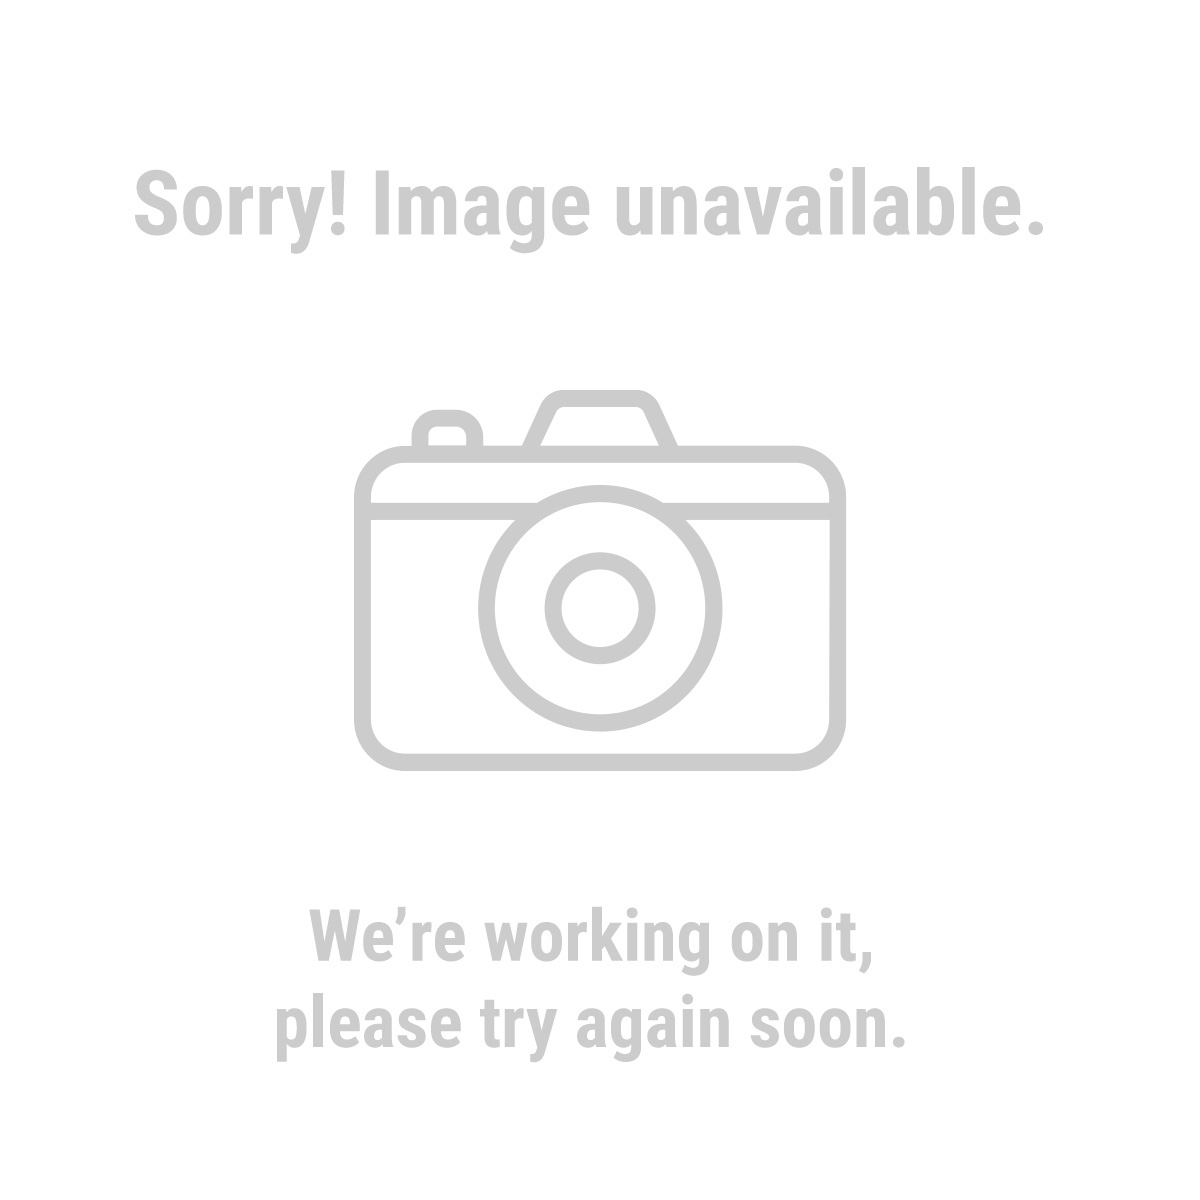 Haul-Master® 61226 2 in. x 30 ft. Heavy Duty Recovery Strap